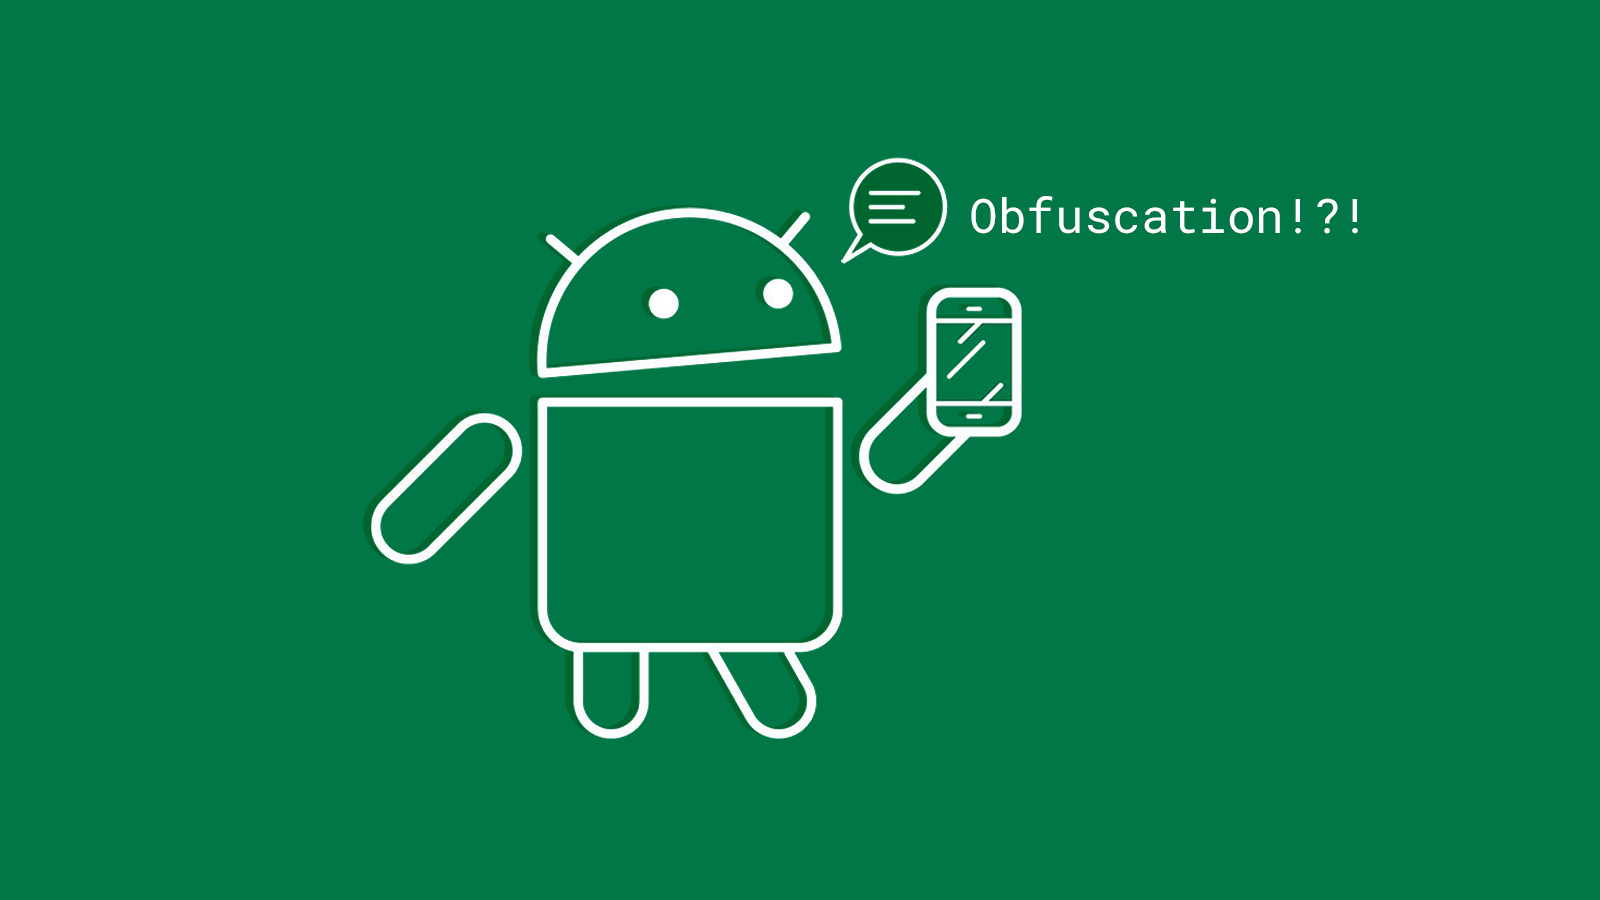 android-obfuscation-tools-proguard-dexguard